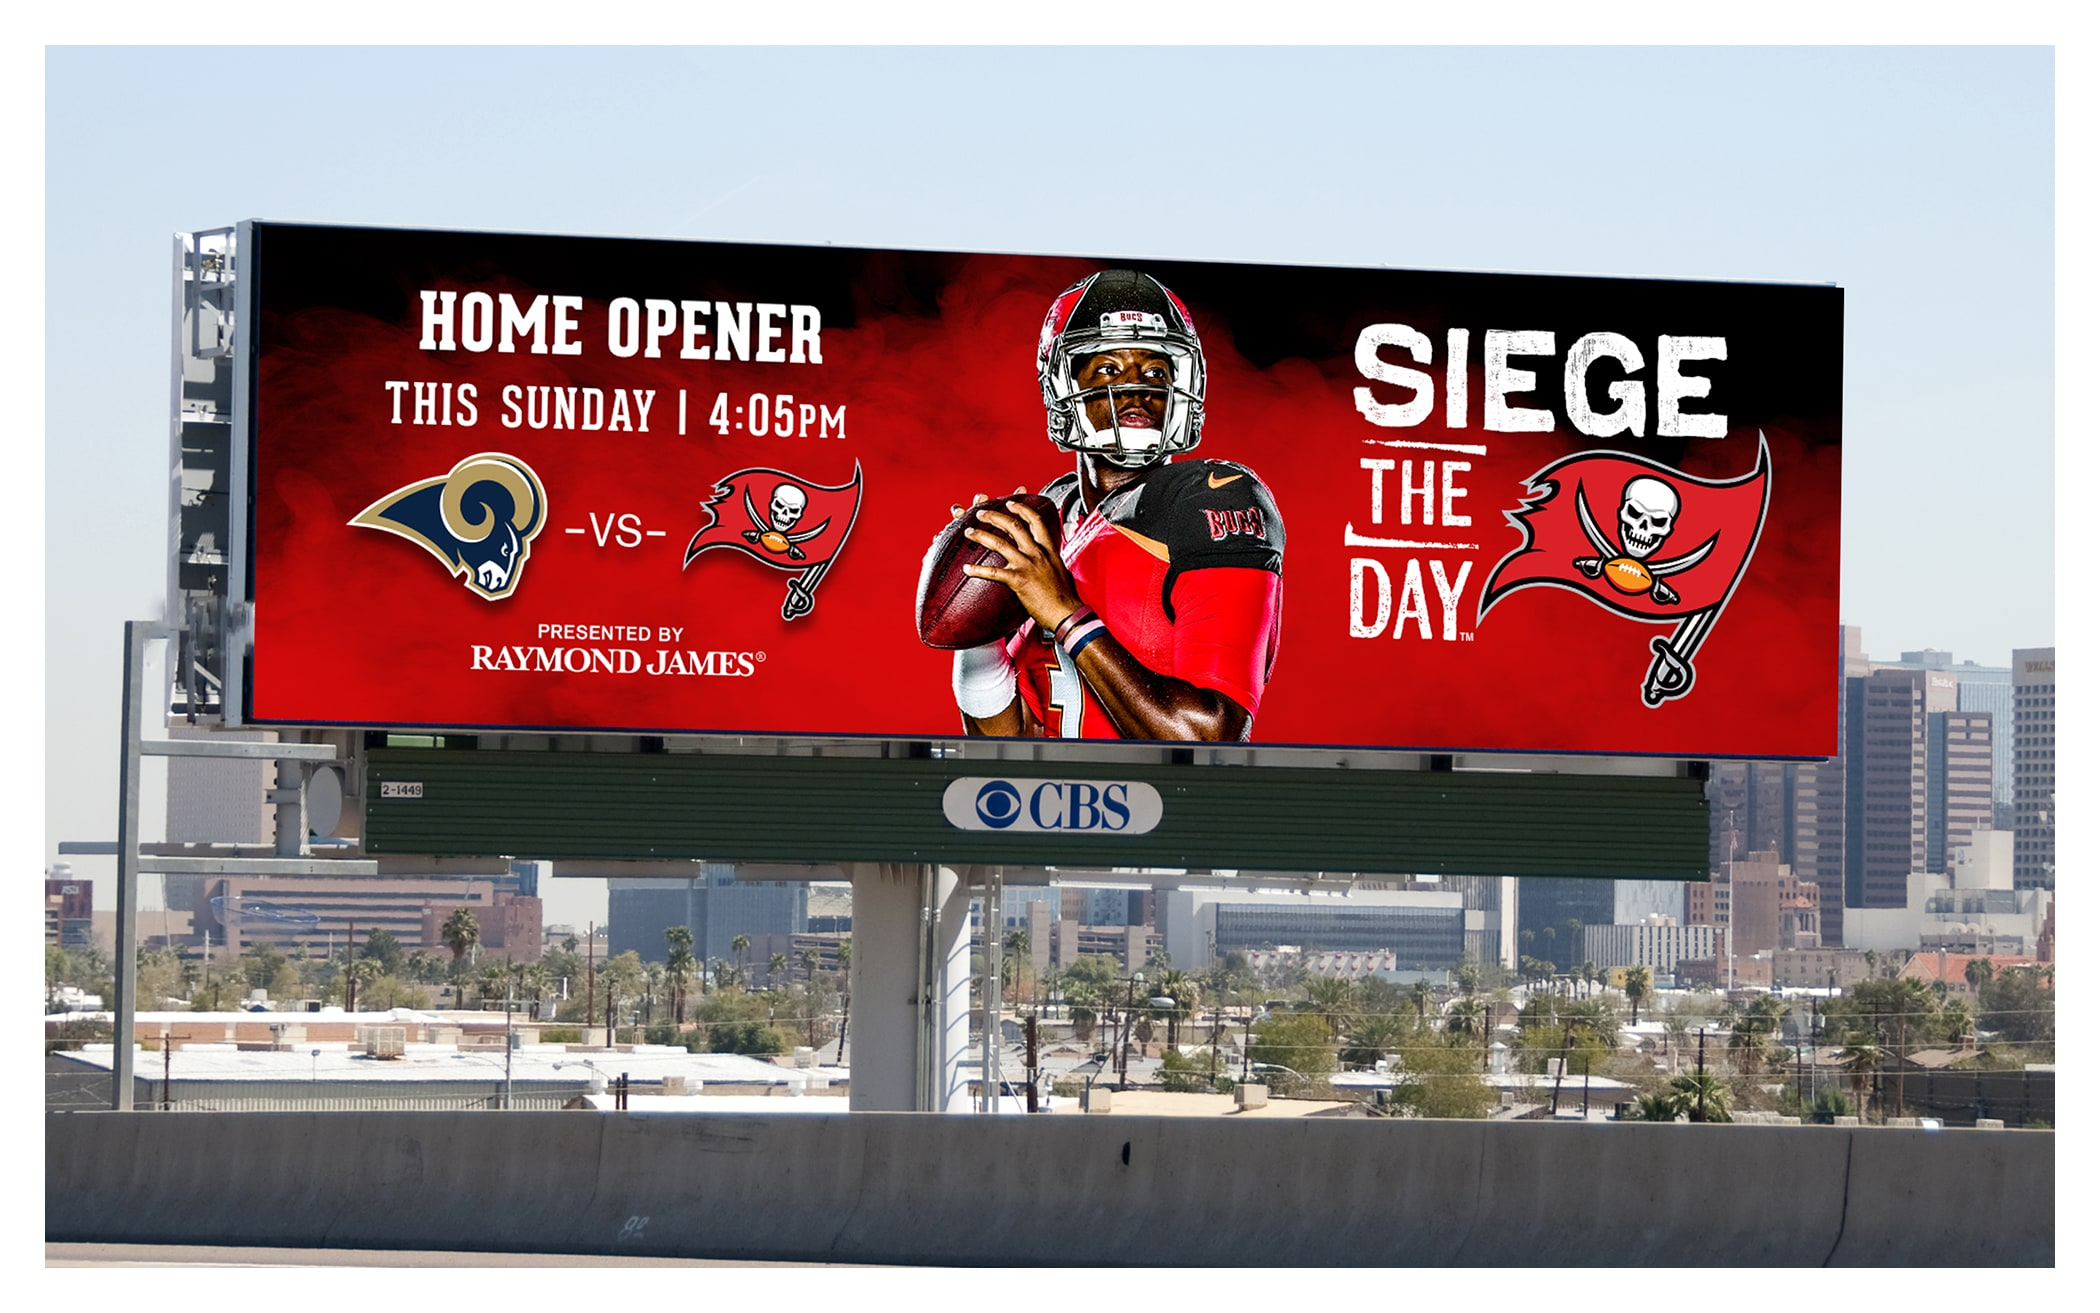 Photo of Siege the Day billboard for Rams vs. Bucs game